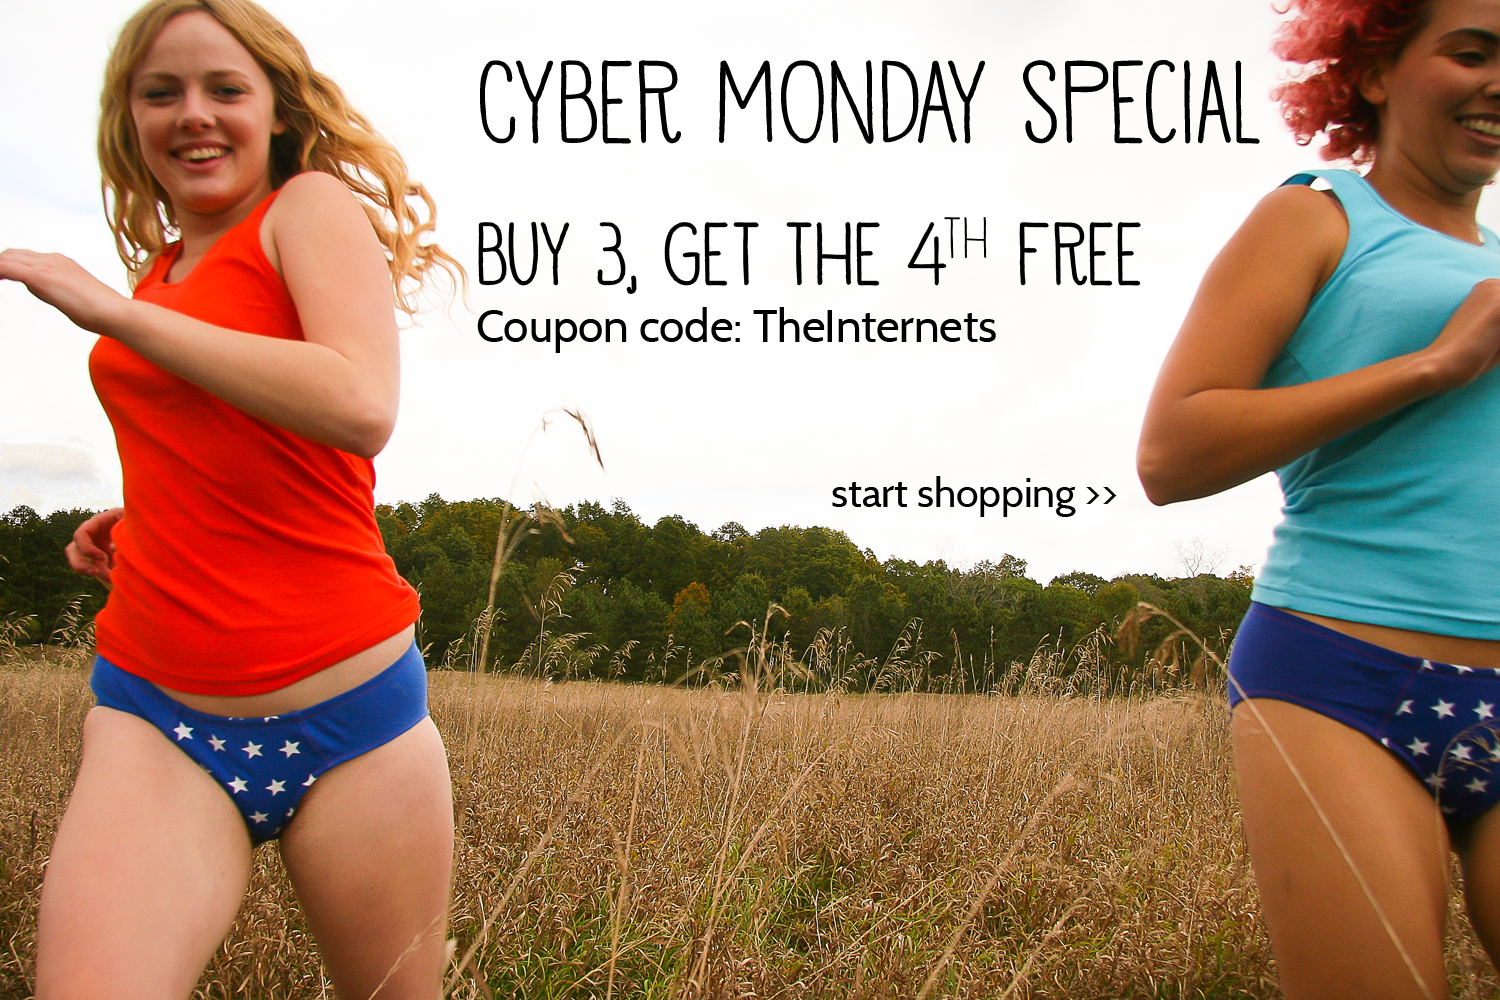 On Cyber Monday, buy 3, get the 4th free with the coupon code